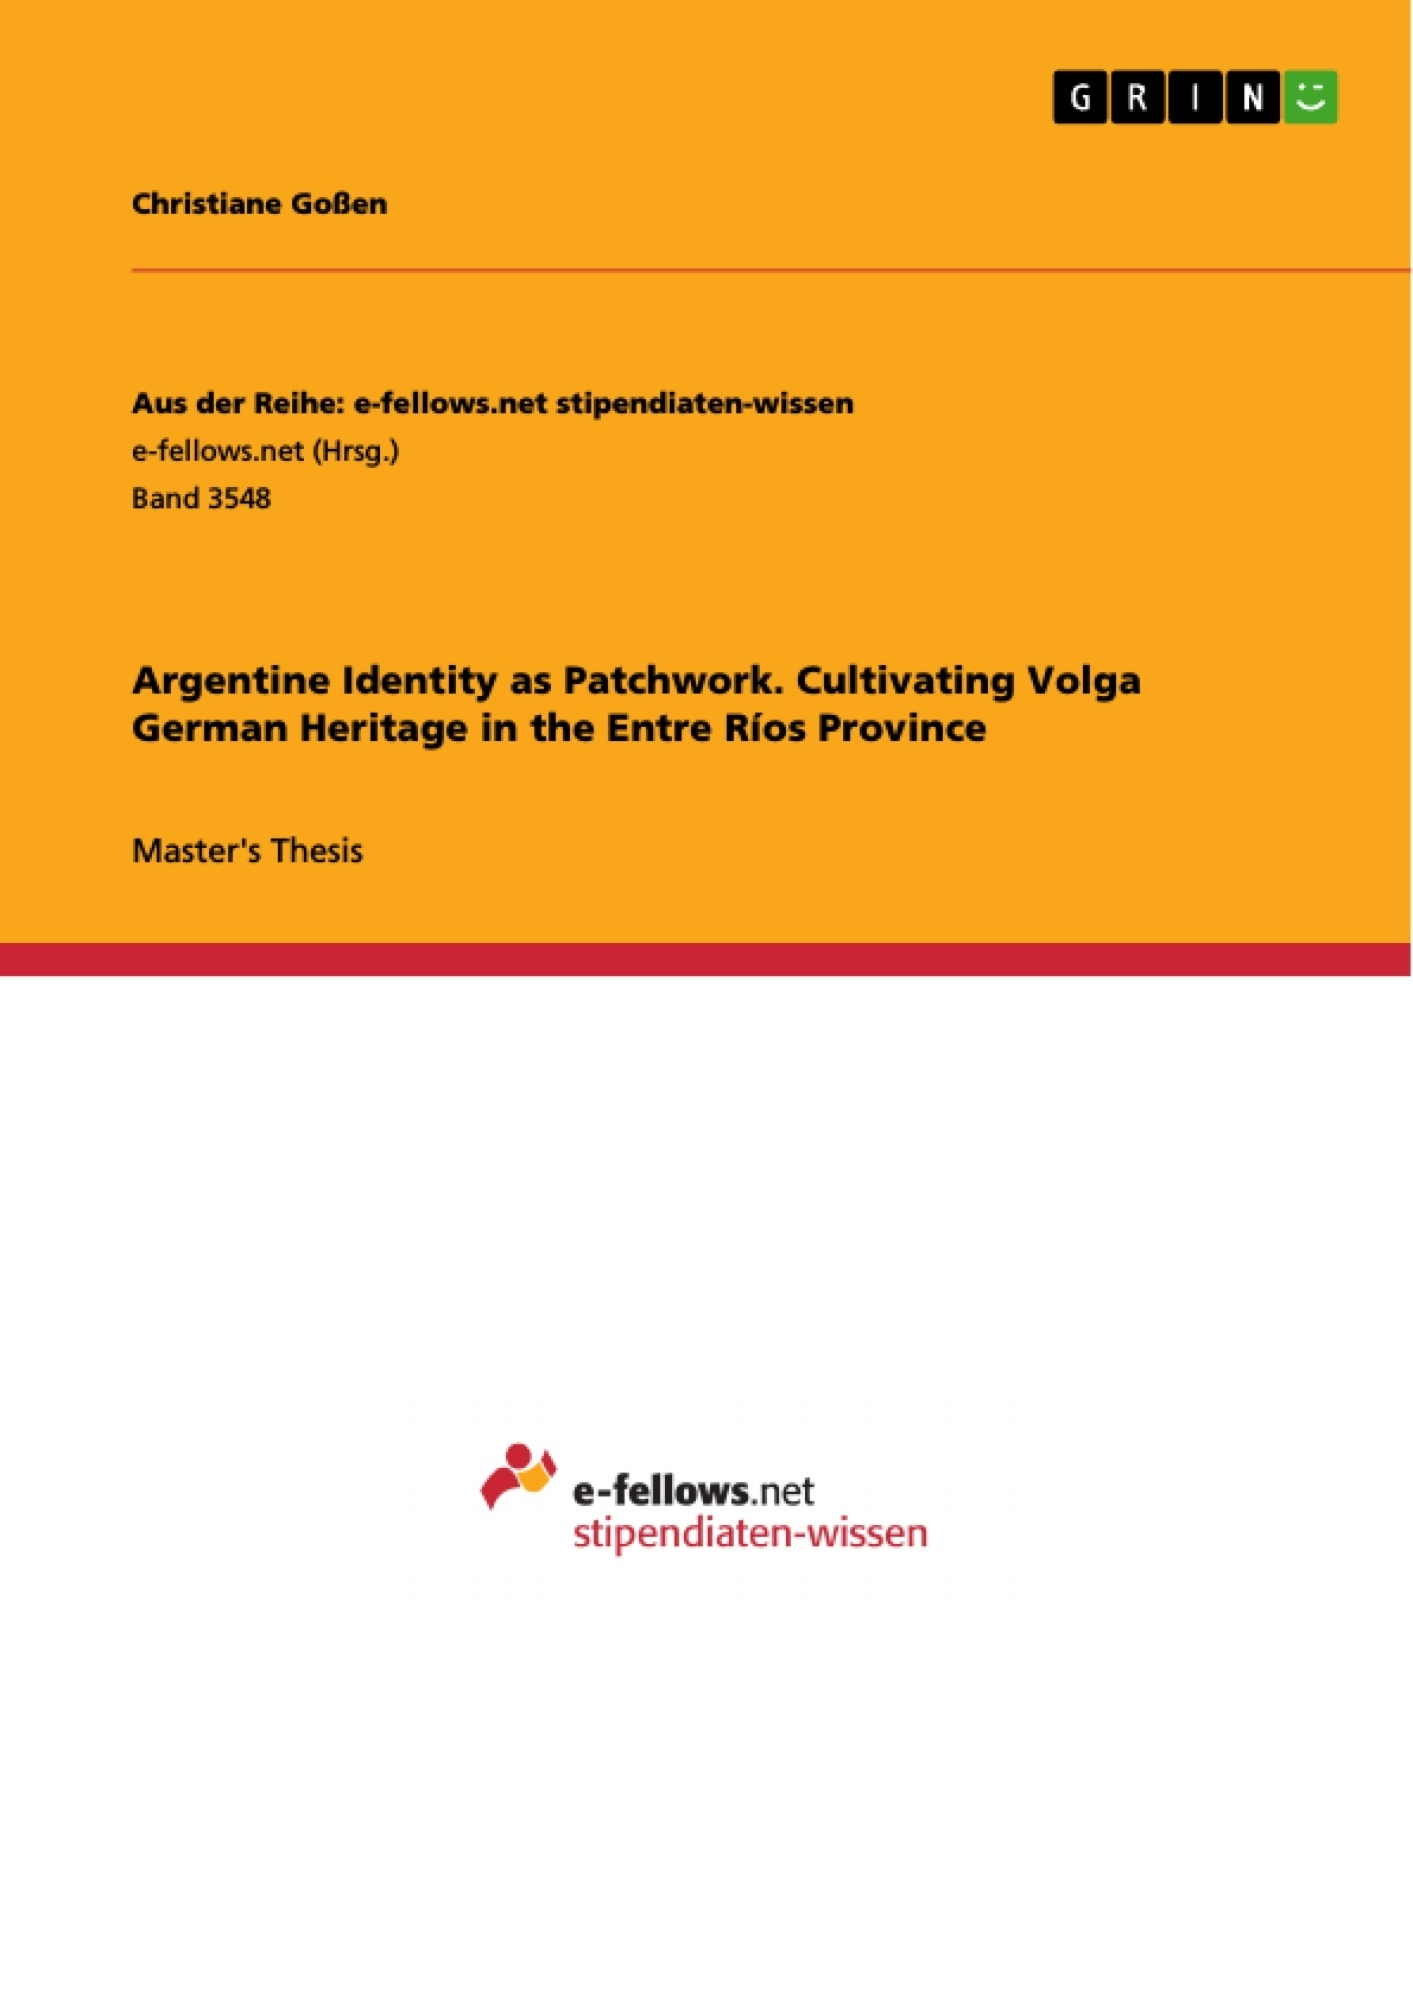 Title: Argentine Identity as Patchwork. Cultivating Volga German Heritage in the Entre Ríos Province